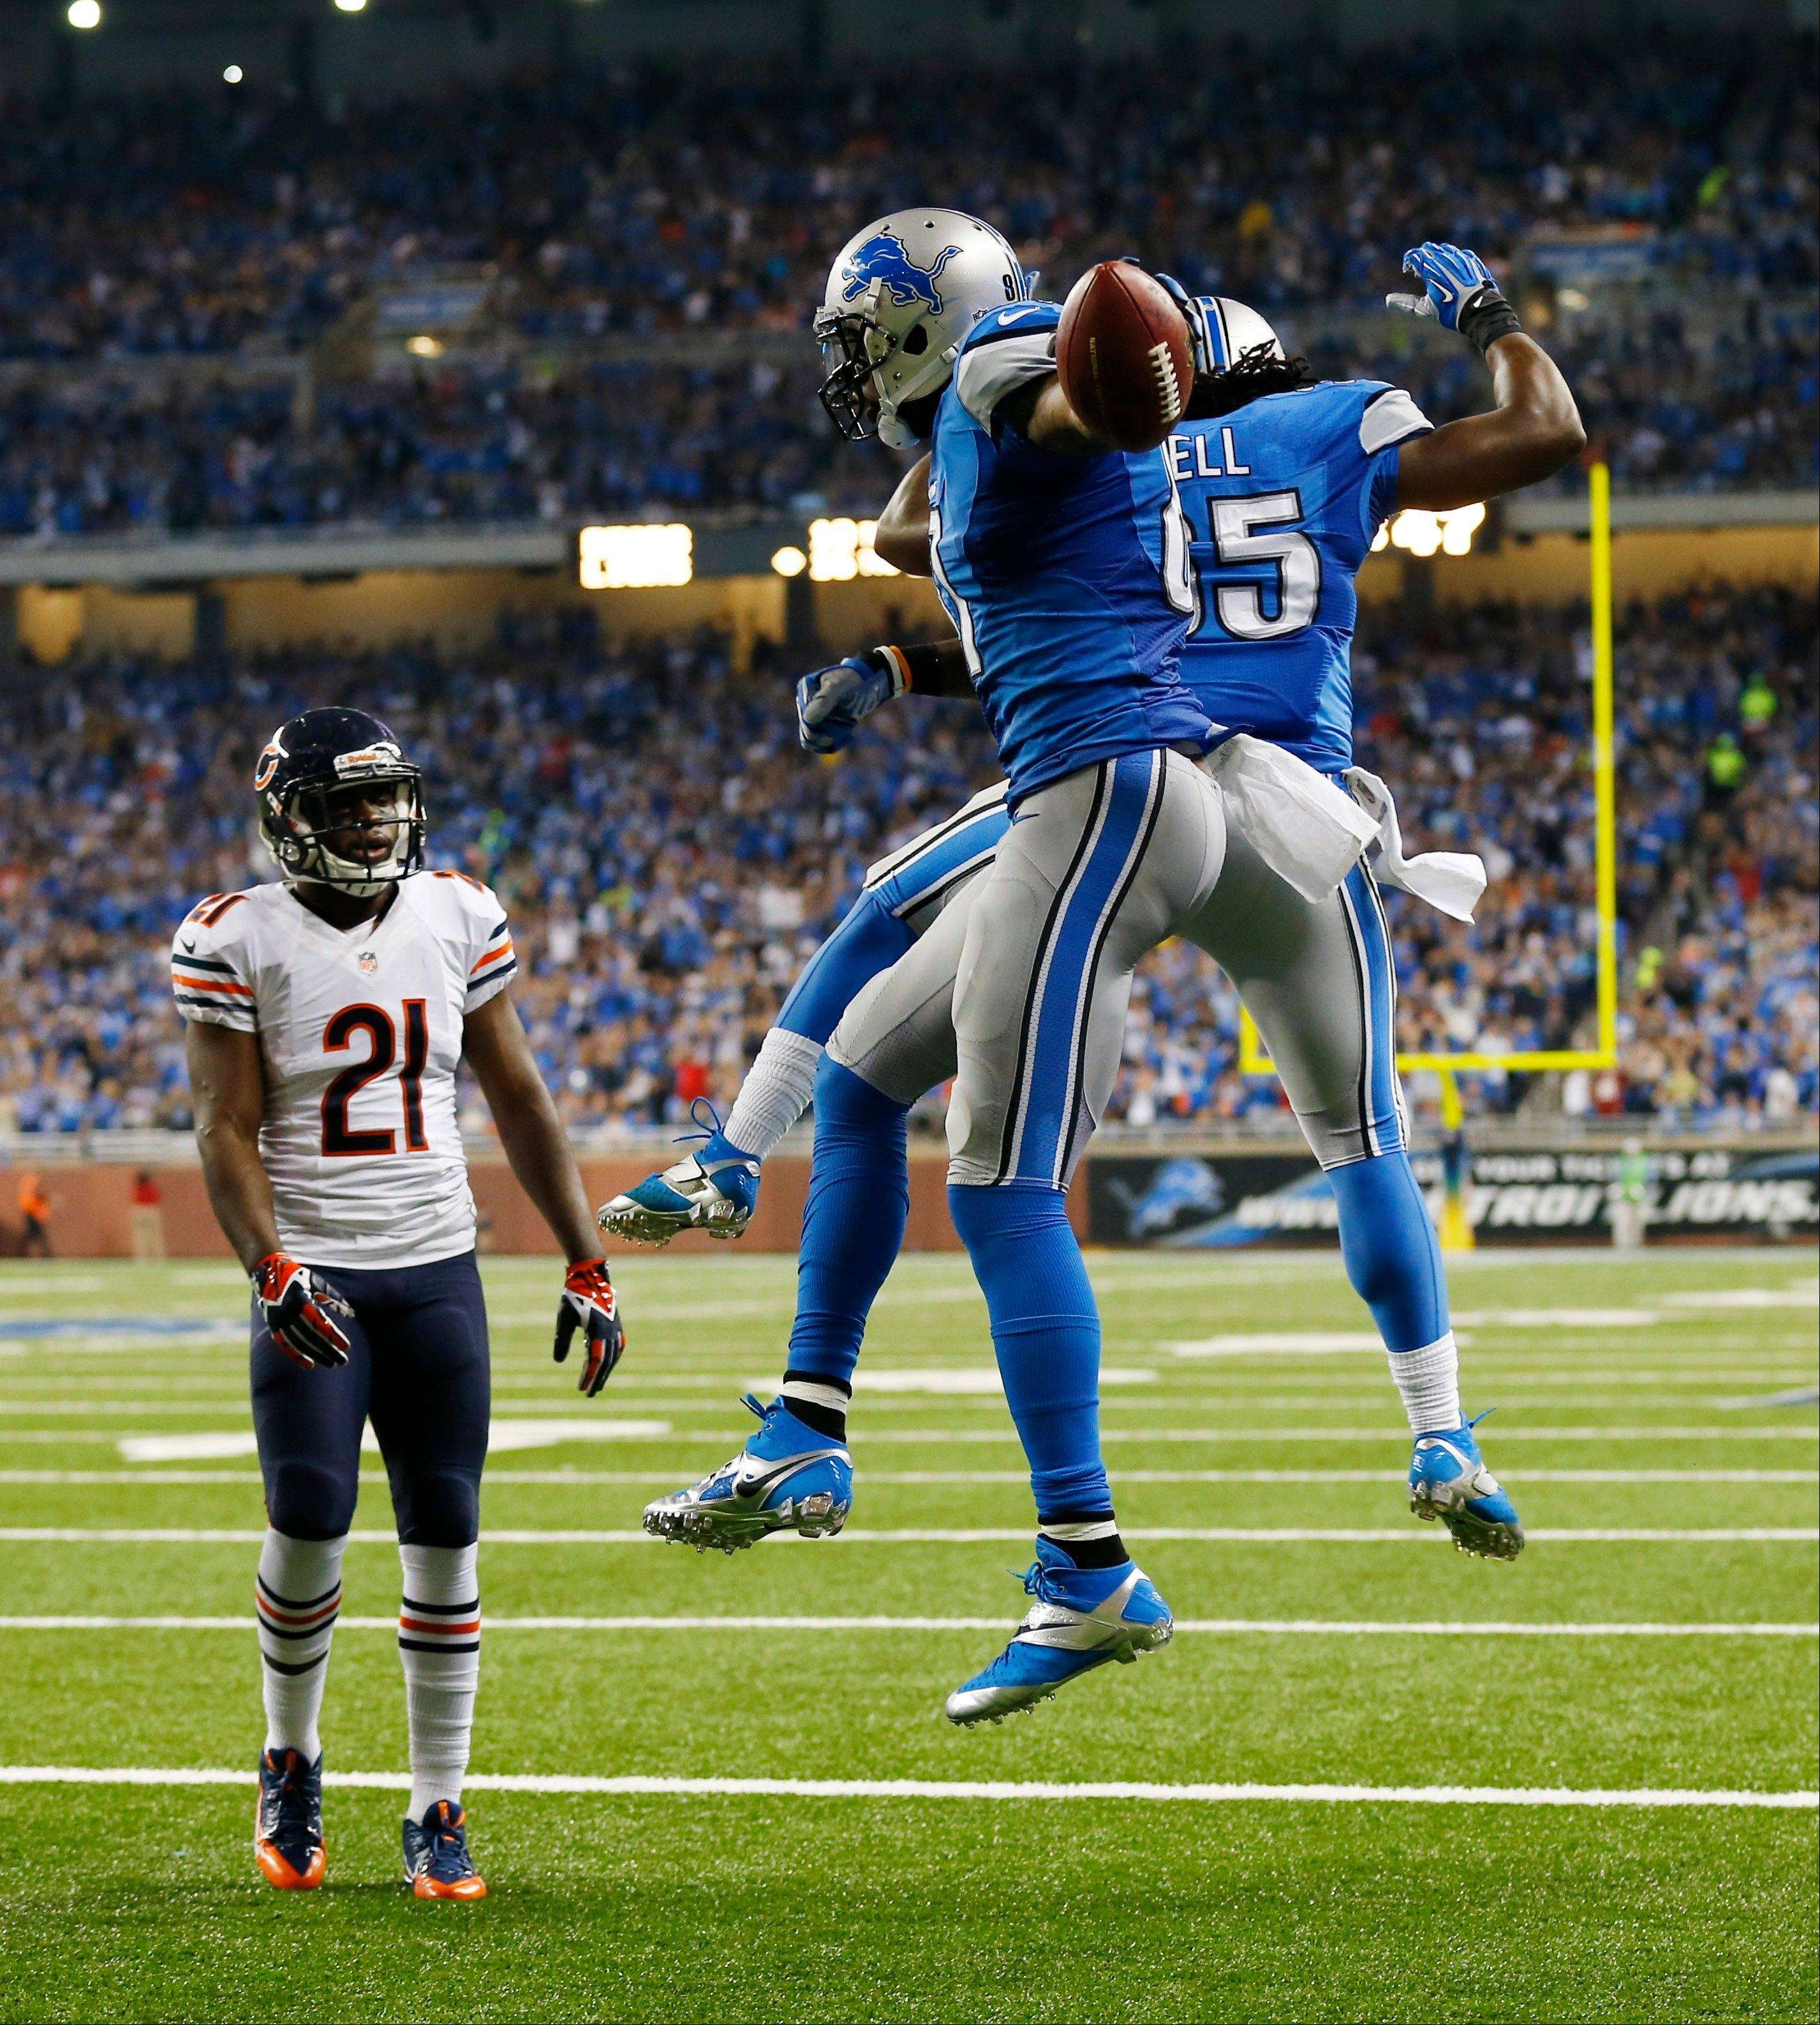 Detroit Lions wide receiver Calvin Johnson (81) and teammate running back Joique Bell (35) celebrate Johnson's touchdown as Chicago Bears strong safety Major Wright (21) look on during the second quarter.